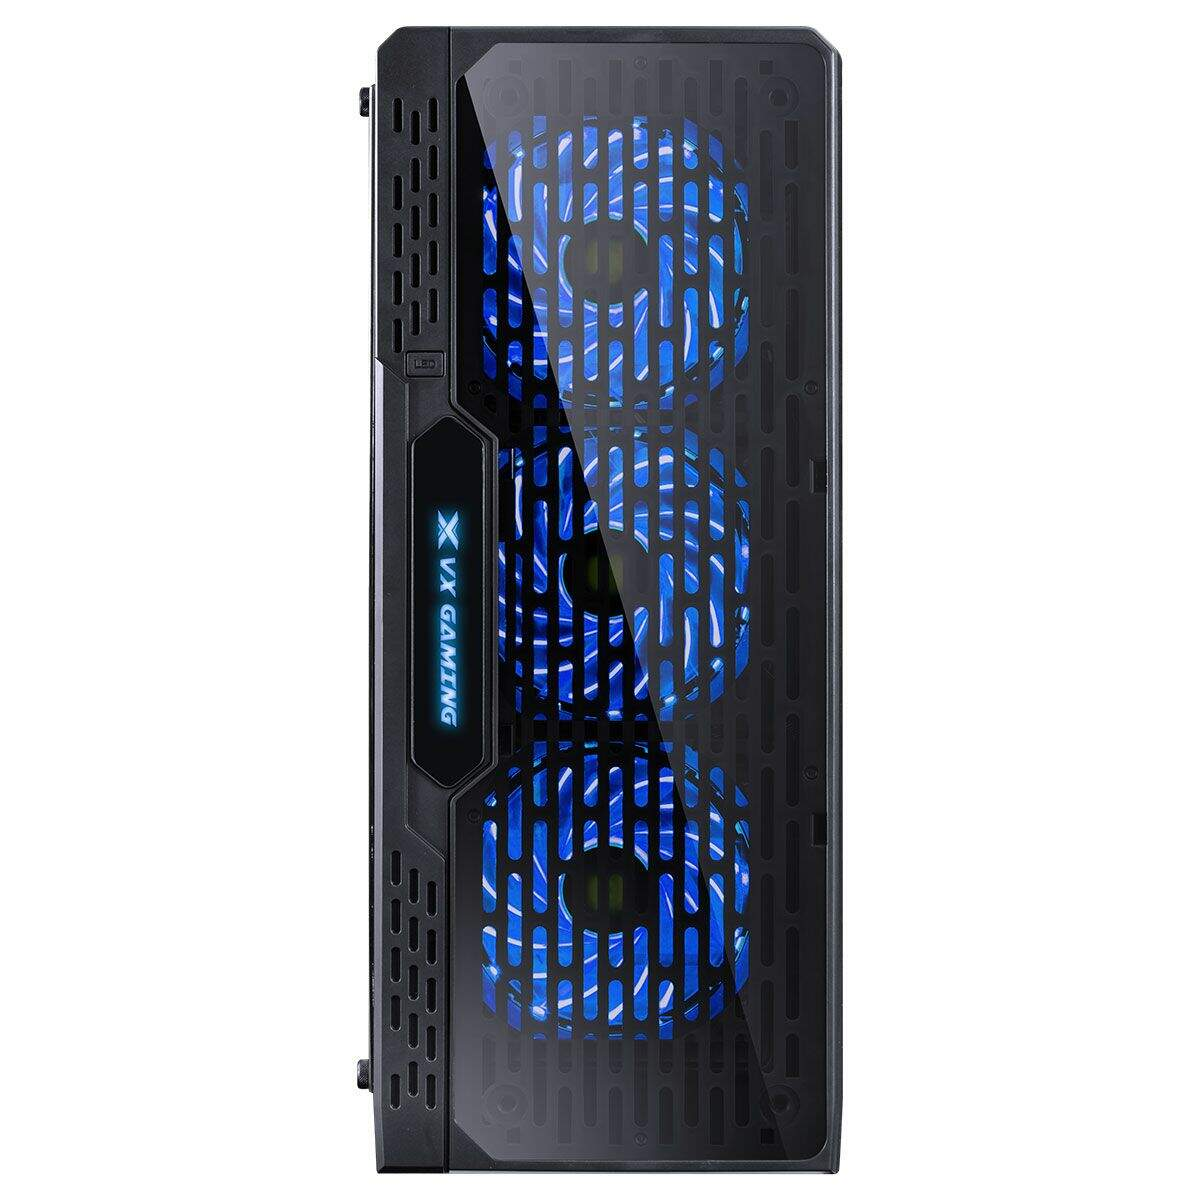 PC GAMER Intel Fusion II - Core i5 8400 Hexa Core - GTX 1060 6GB - 8GB DDR4 - HD 1TB - 500W